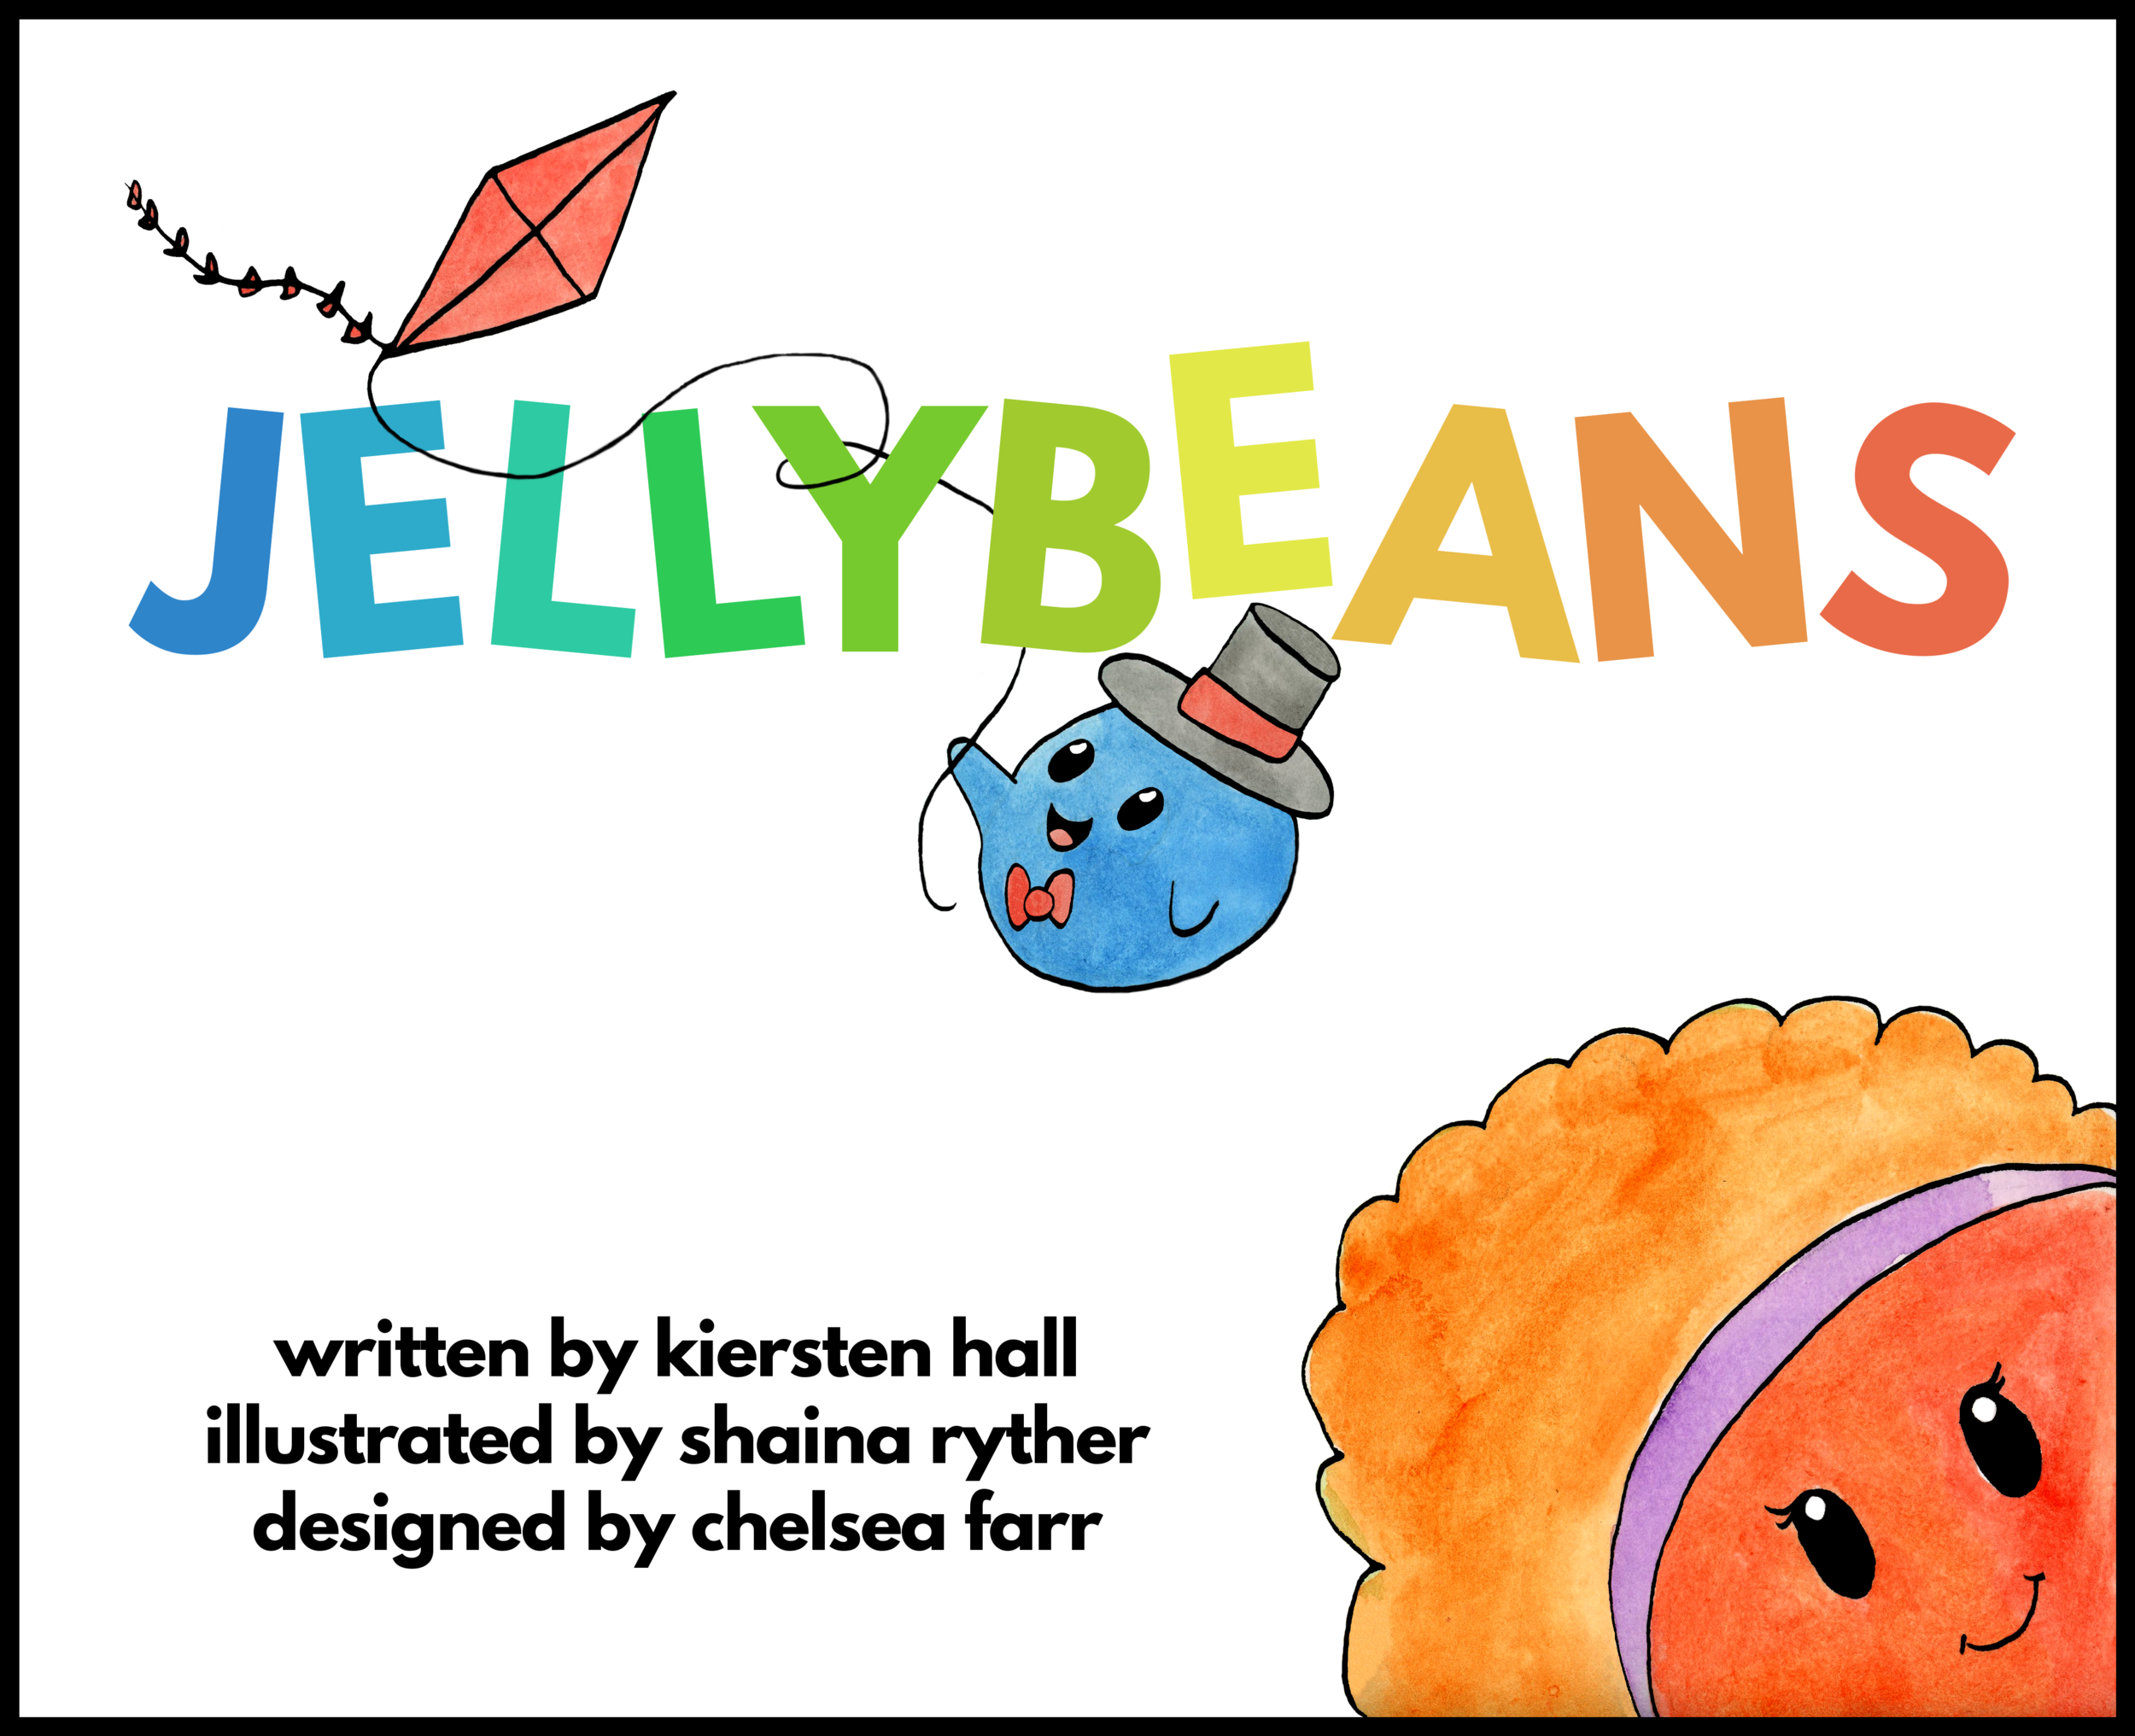 Front Cover for  Jellybeans  releasing June 2019  A thoughtful and sweet children's book to promote kindness and inclusivity.    #thejellybeanbook   #khallbooks   @thejellybeanbook